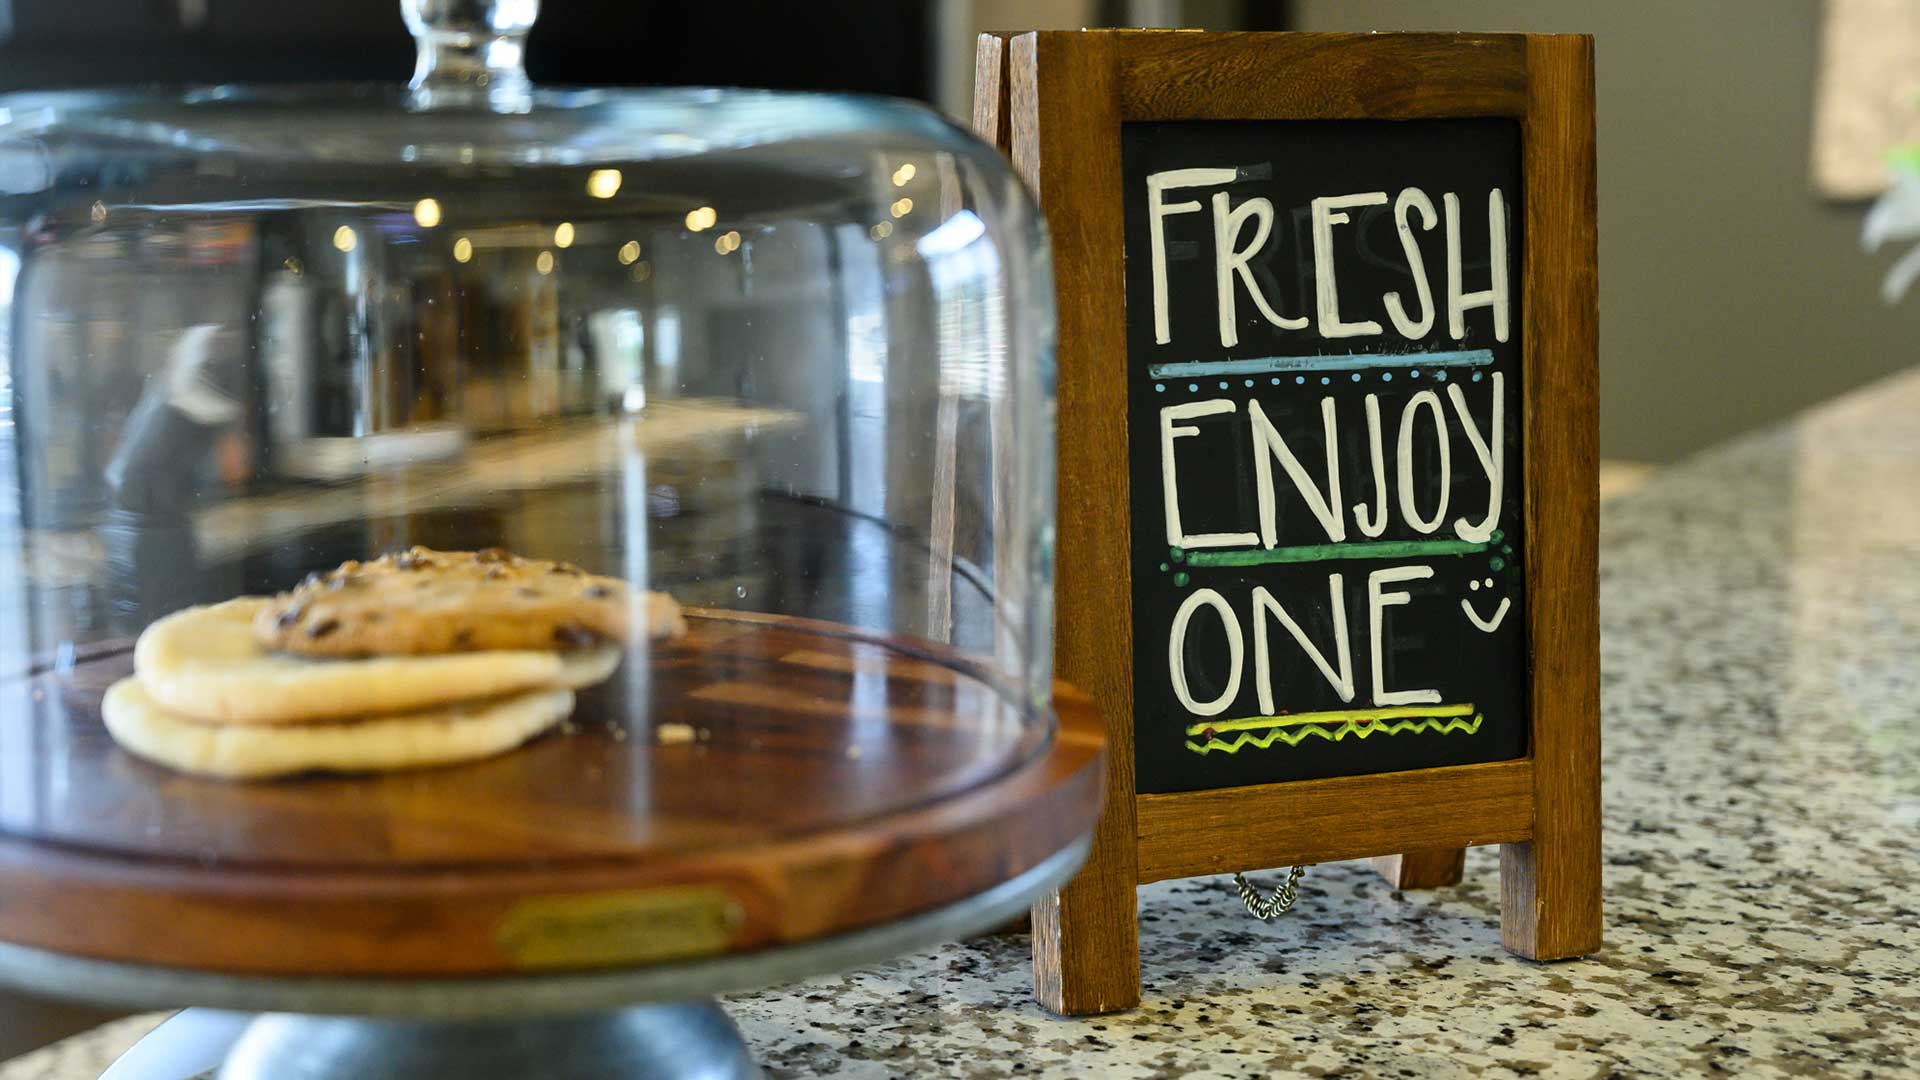 Fresh cookies Springs at Sun Prairie Apartments in Sun Prairie